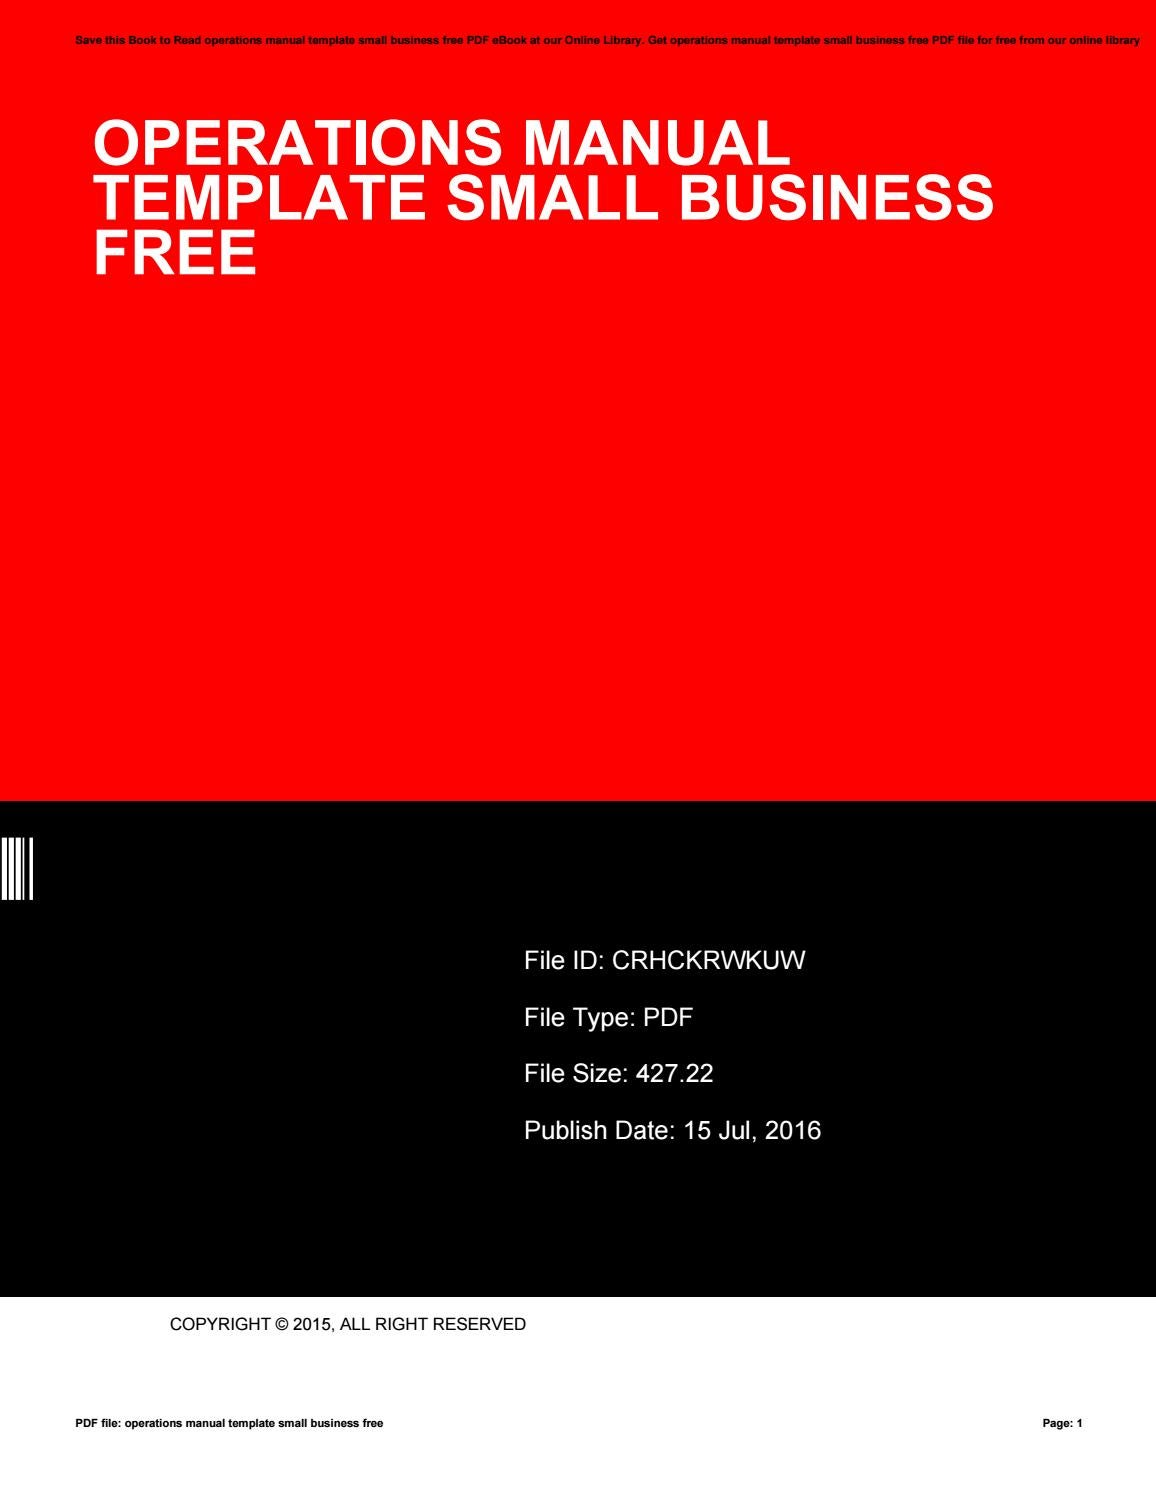 Operations Manual Template Small Business Free By Cutout52 Issuu